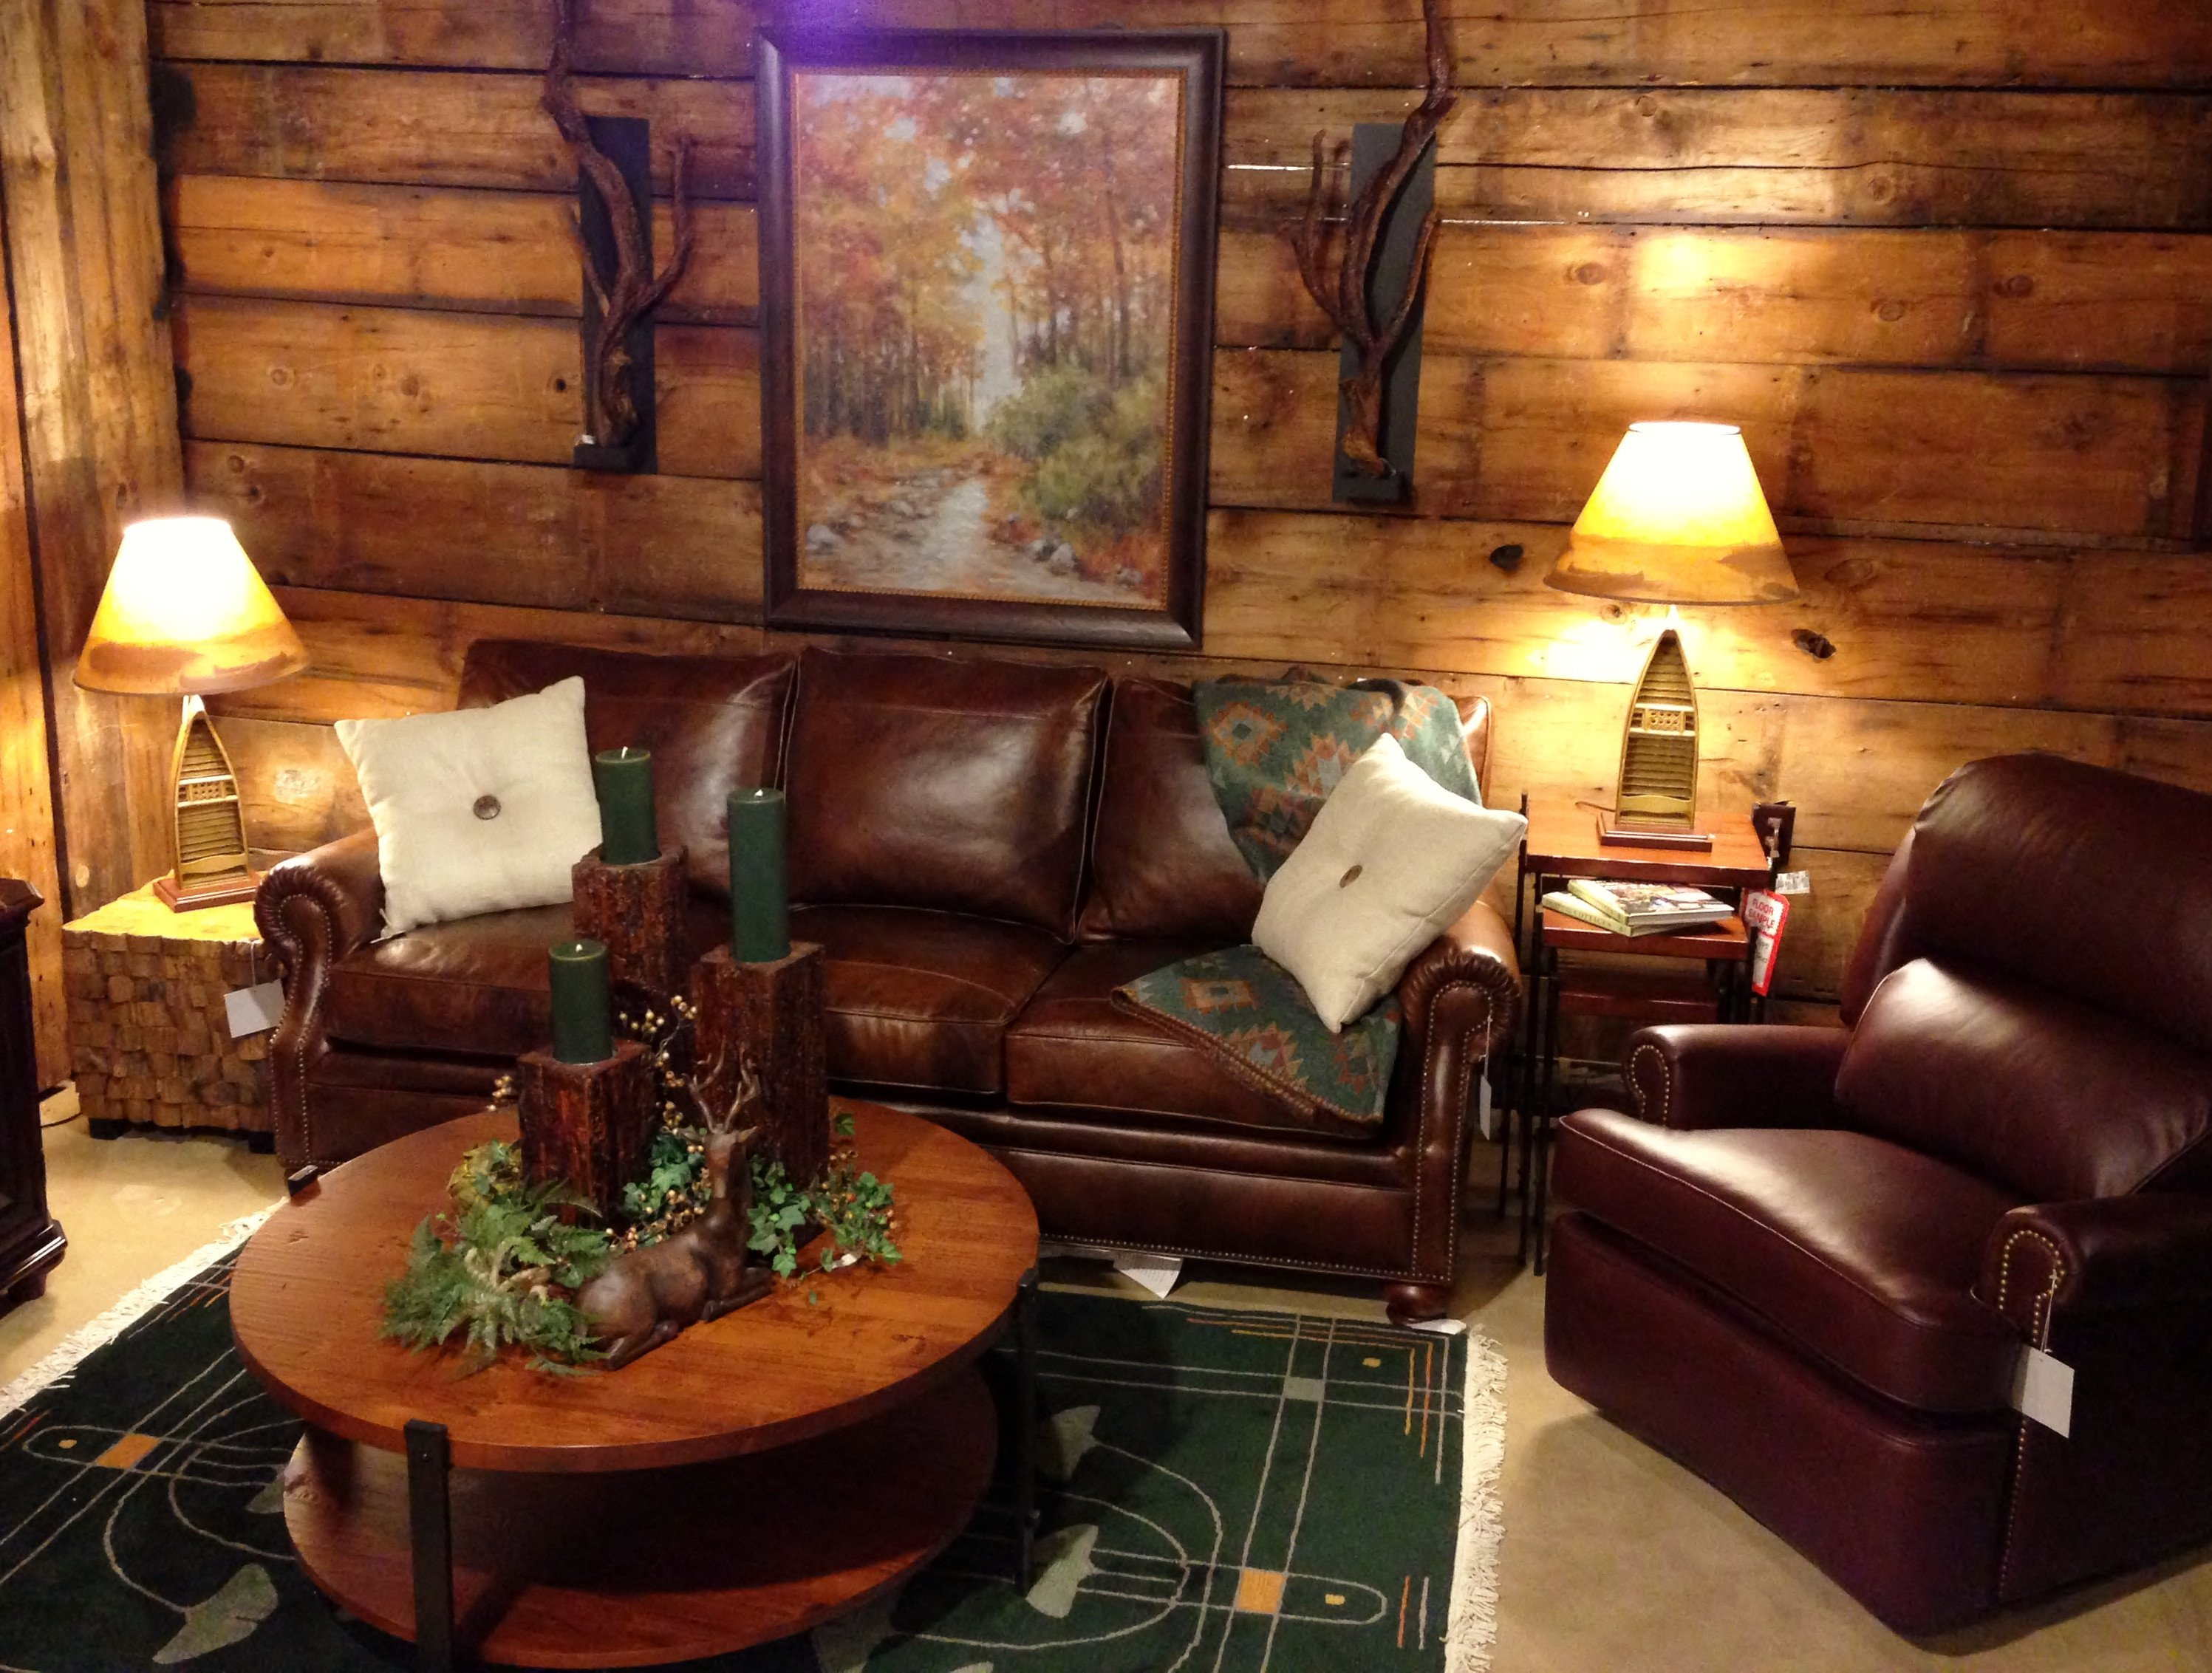 Rustic Living Room Decor Ideas Unique which Living Room is Right for You